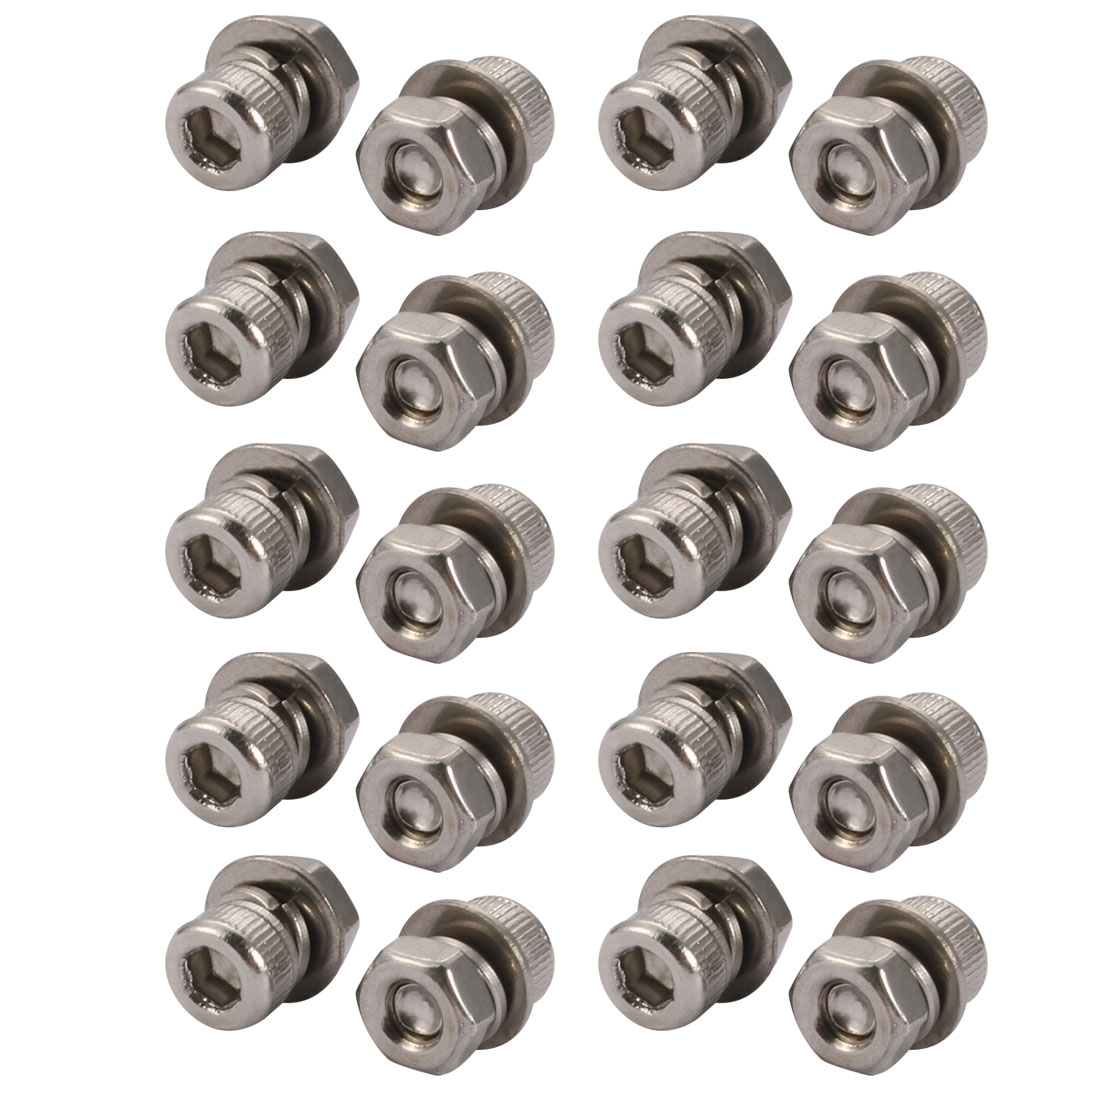 20Pcs M4x5mm 304 Stainless Steel Knurled Hex Socket Head Bolt Nut Set w Washer